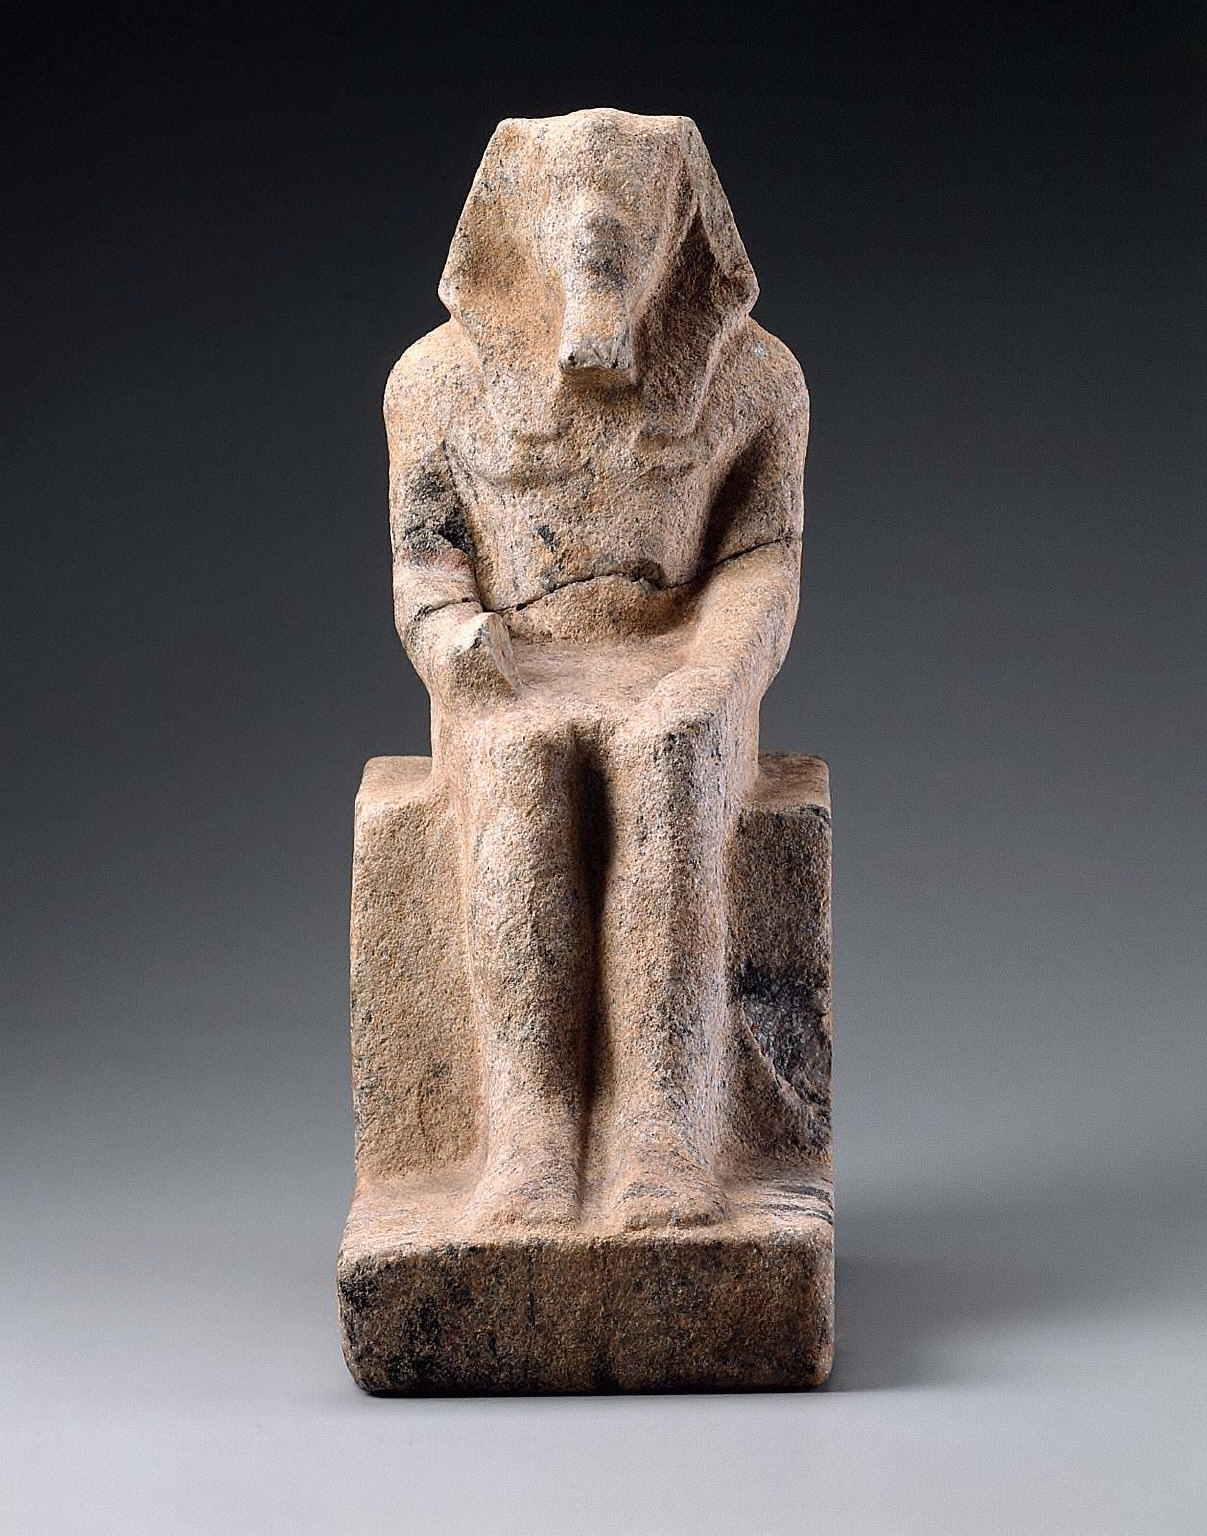 Unfinished statuette of Menkaure